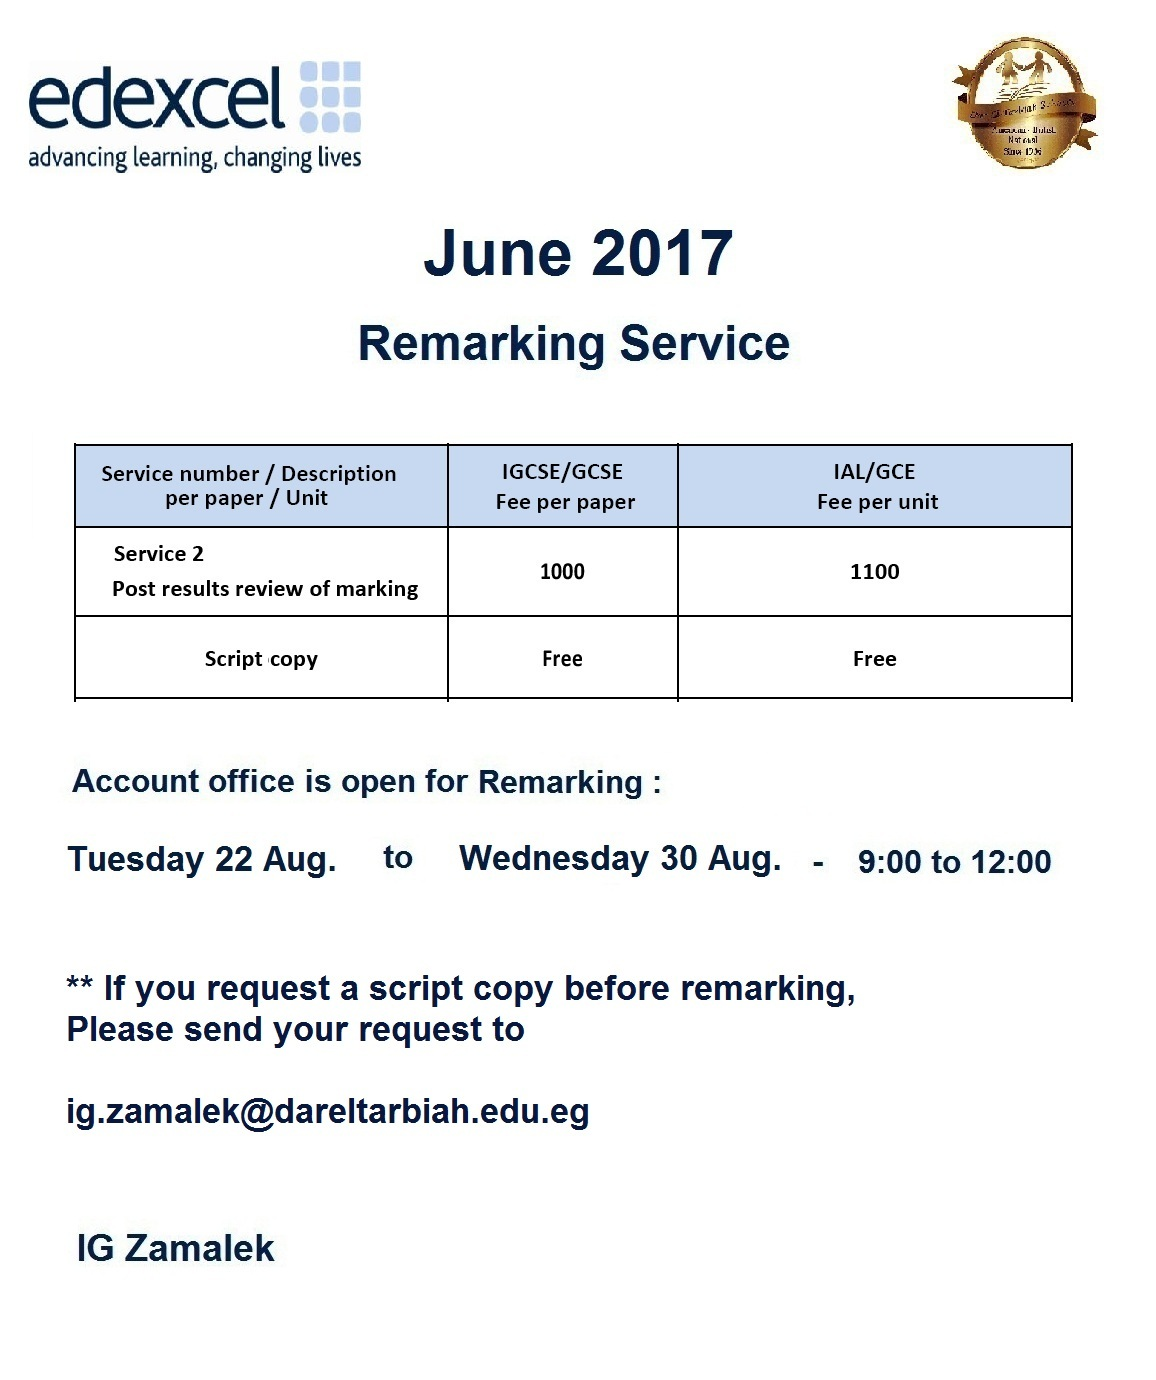 IG Zamalek : Edexcel Remarking Fees - June 2017